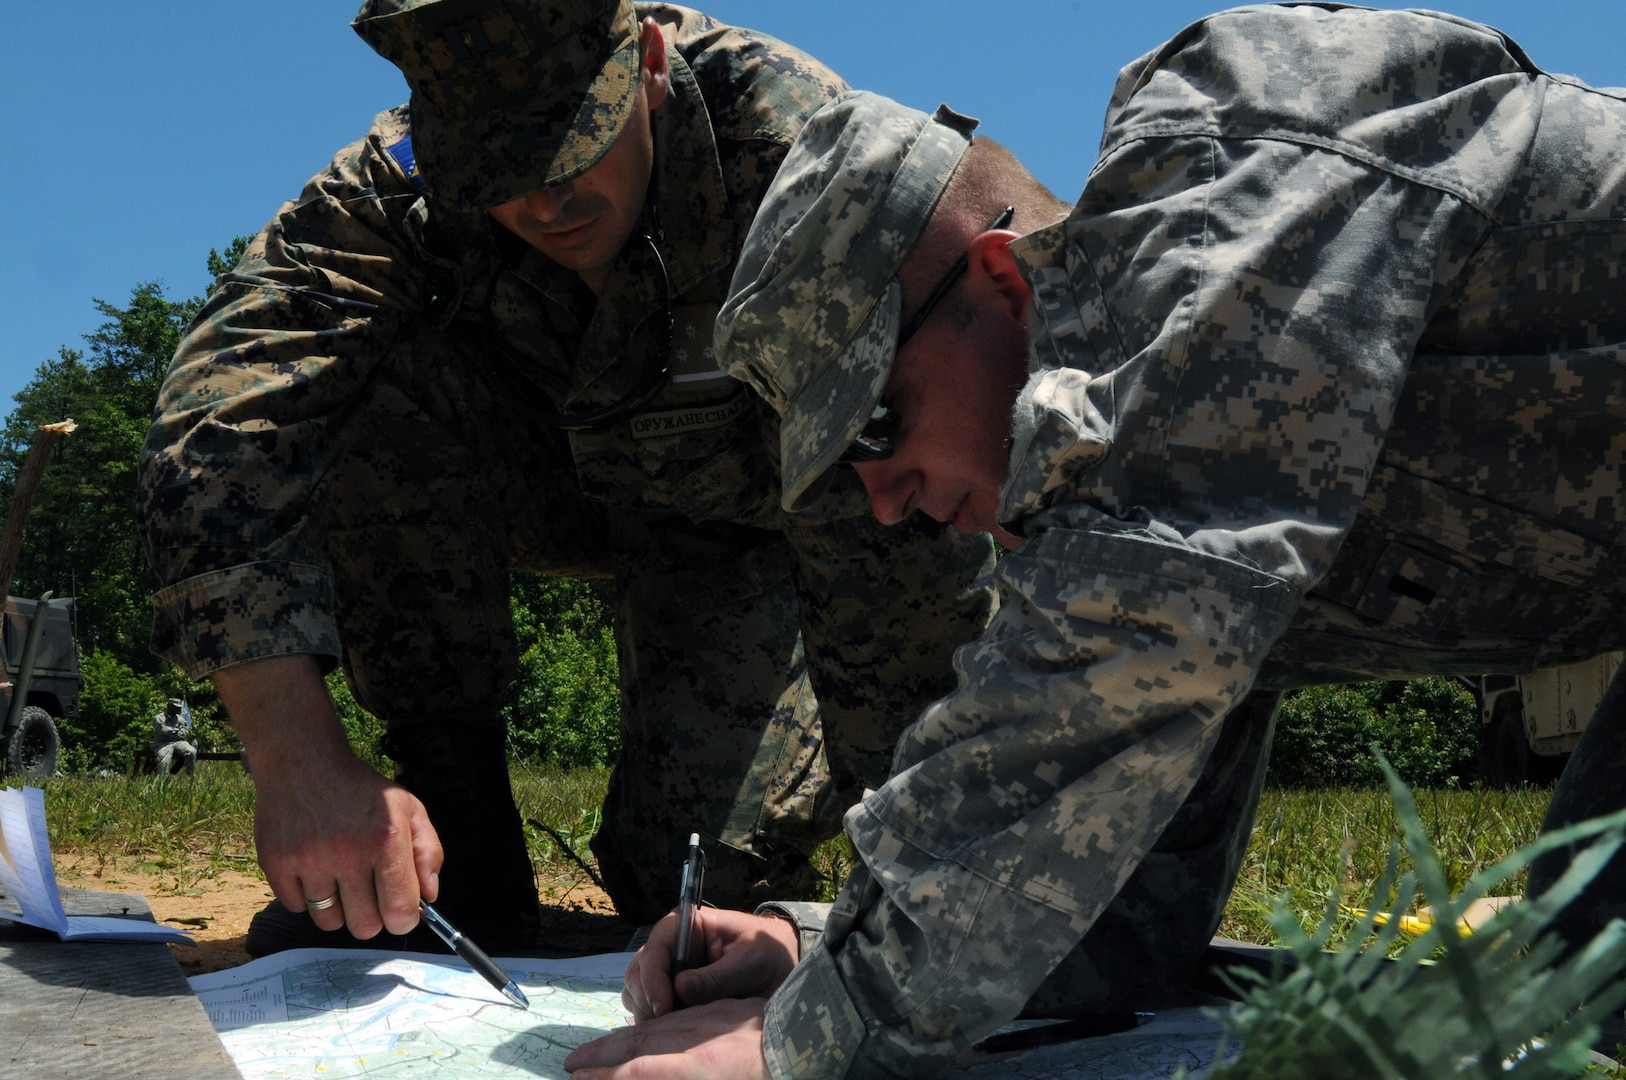 Armed Forces of Bosnia-Herzegovina Capt. Drgan Malic, left, company commander, and Army 1st Lt. Jeff Hartline, of Company C, 1st Battalion, 175th Infantry Regiment, plot out features on a map in order to complete a sand table for a combat lane exercise during training at Fort A.P. Hill, Va., June 15, 2012. AFBiH soldiers were embedded with Maryland Army National Guard units throughout the duration of training here and at Camp Dawson, W.V. Bosnia-Herzegovina and the Maryland National Guard are partnered through the National Guard Bureau's State Partnership Program.